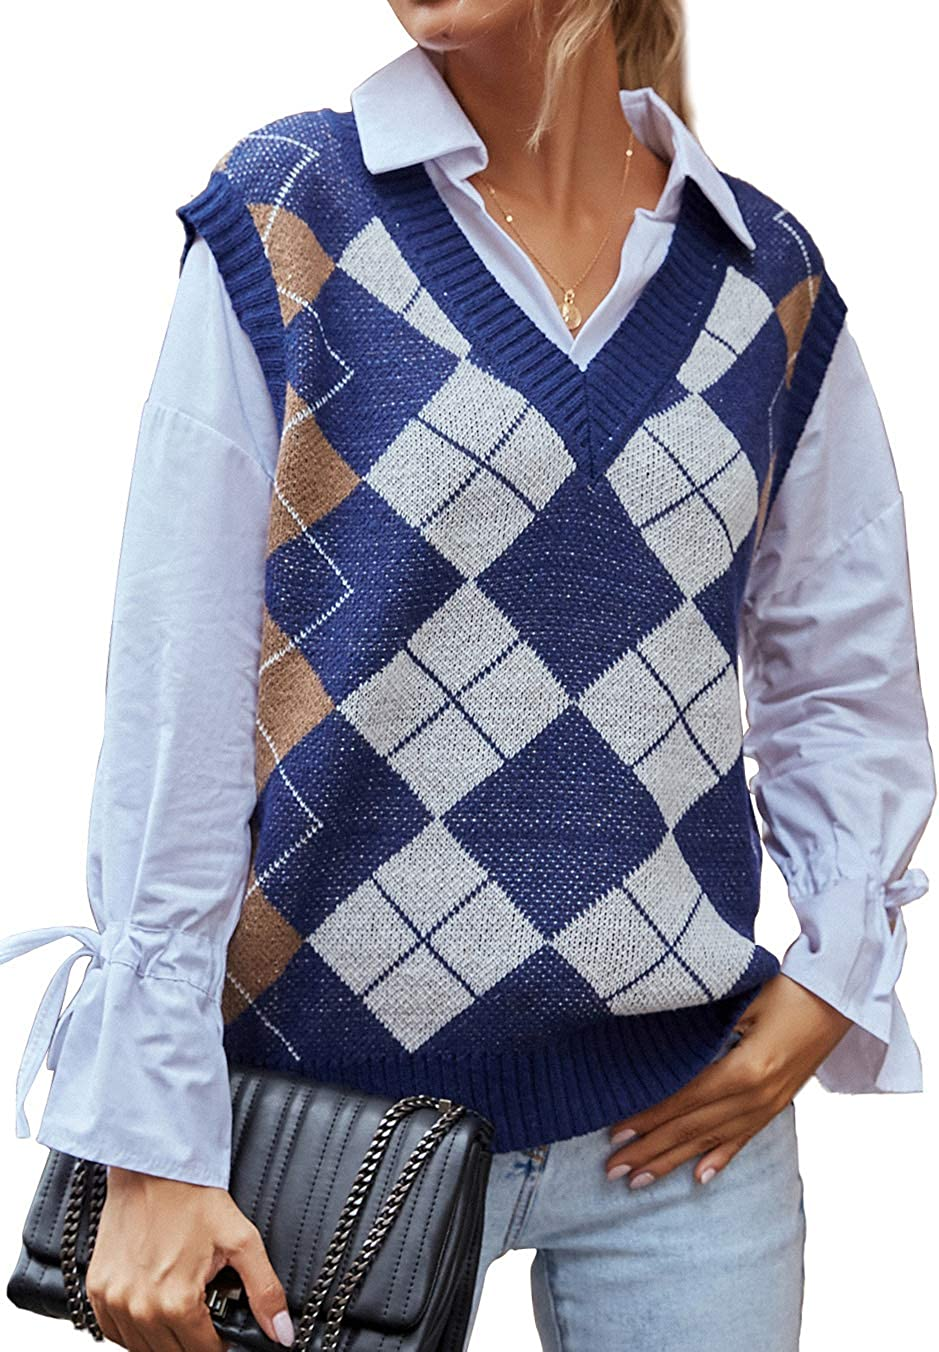 Sofkiny Womens V-Neck Argyle Knitted Sleeveless Sweater Vest Checked Jumper Pullover Tank Top